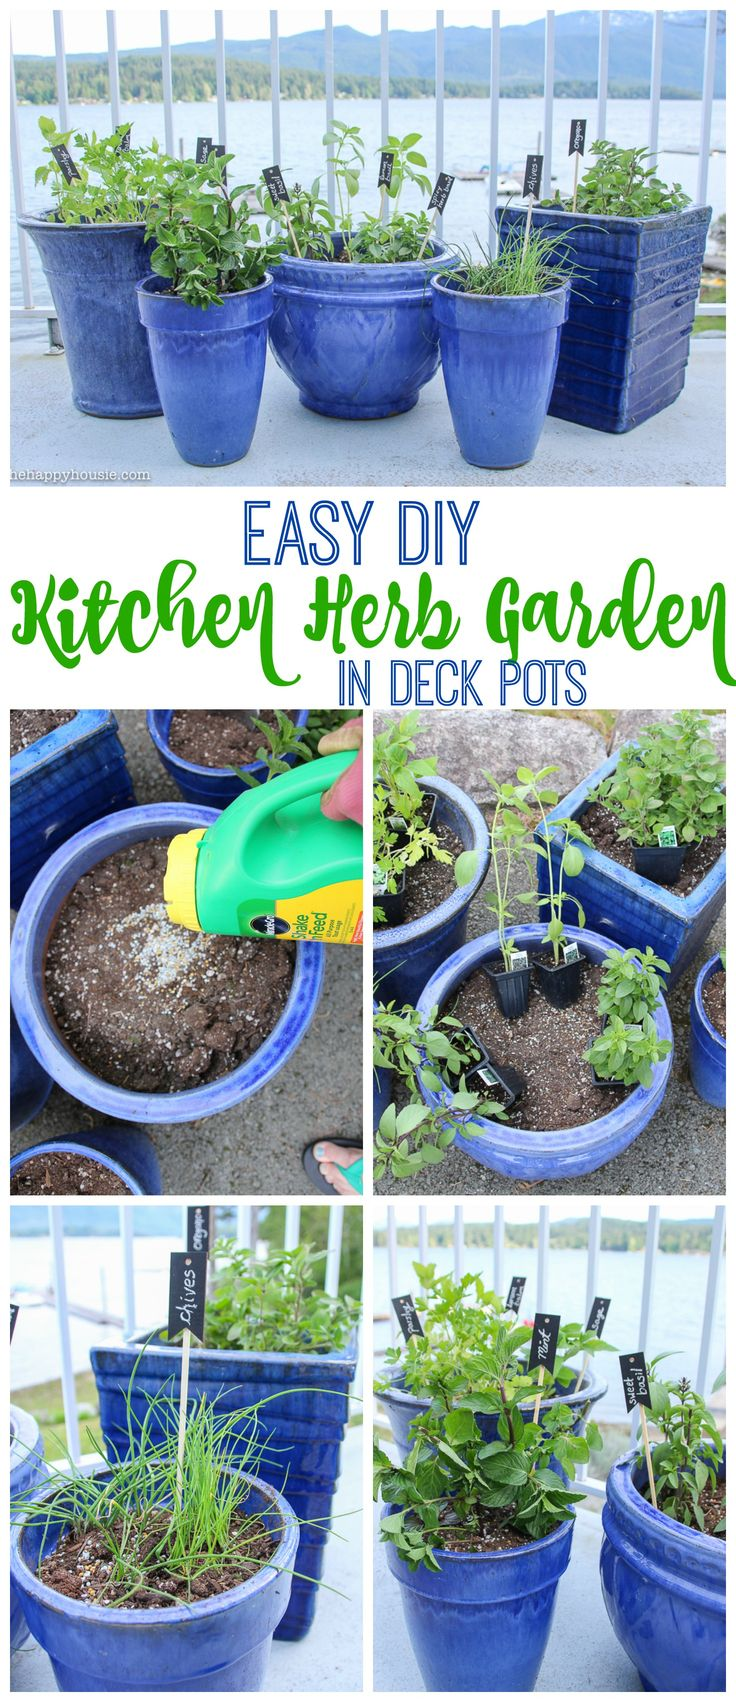 Easy DIY Kitchen Herb Garden in Deck Pots tips at the happy housie